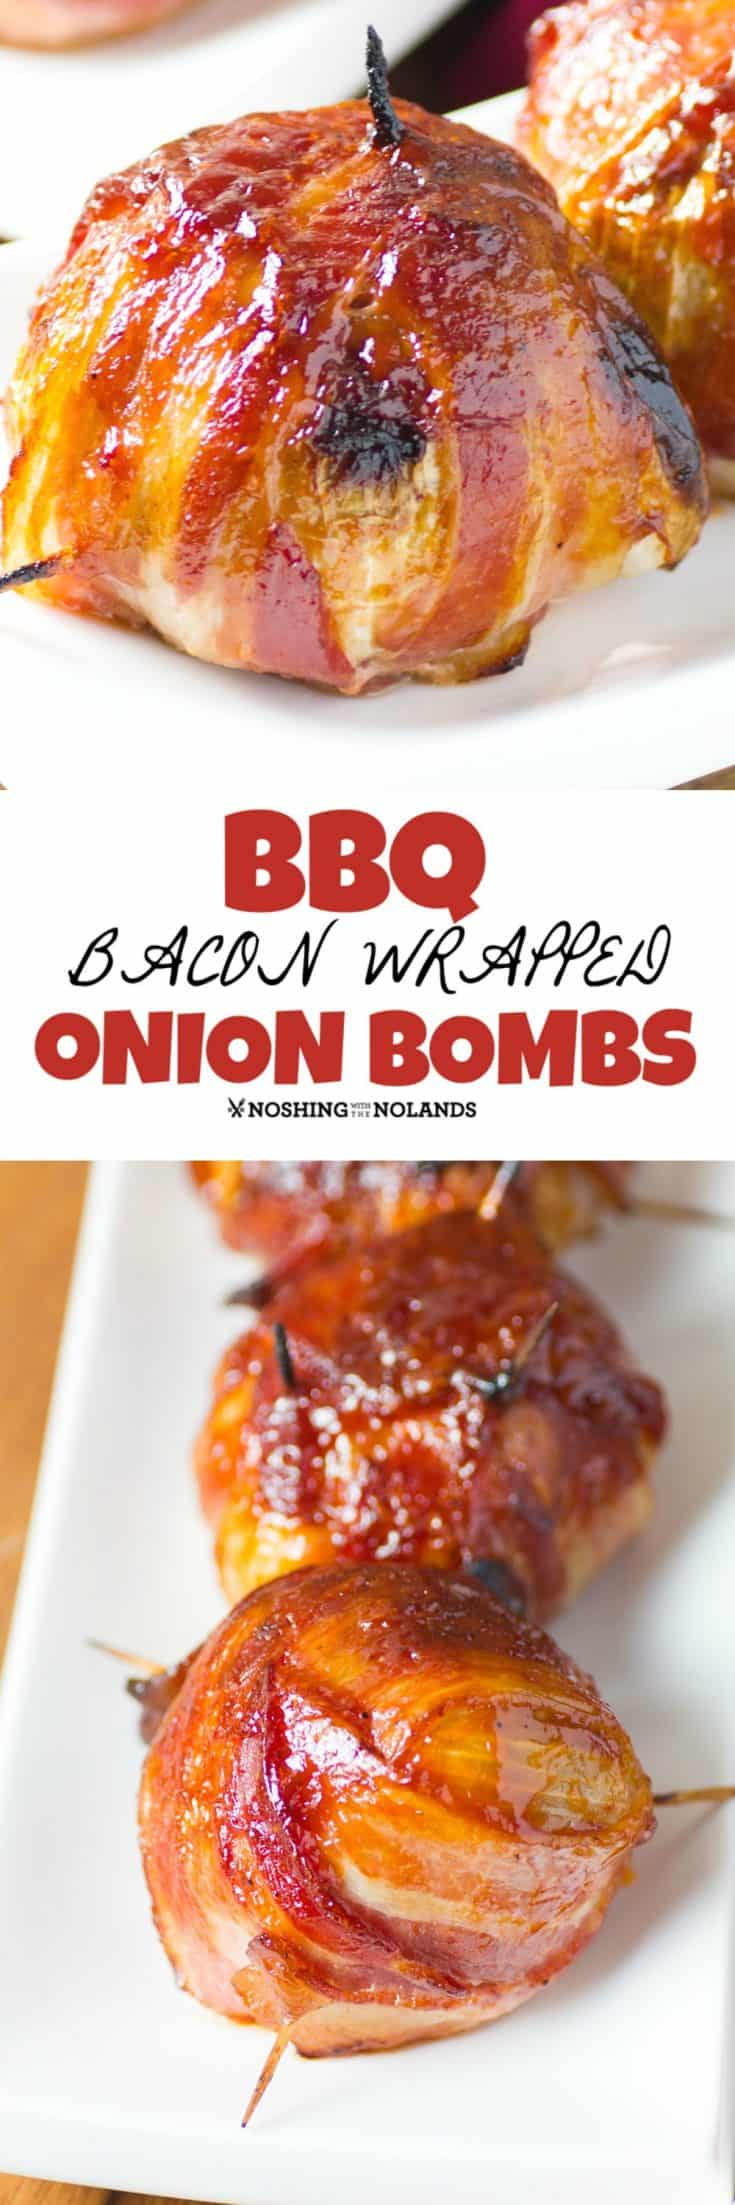 BBQ Bacon Wrapped Onion Bombs are an extravaganza of flavors. A treat that a real meat lover is going to go crazy for!! Great Father's Day meal too!! #onionbombs #bacon #bbq #baconwrapped #fathersday